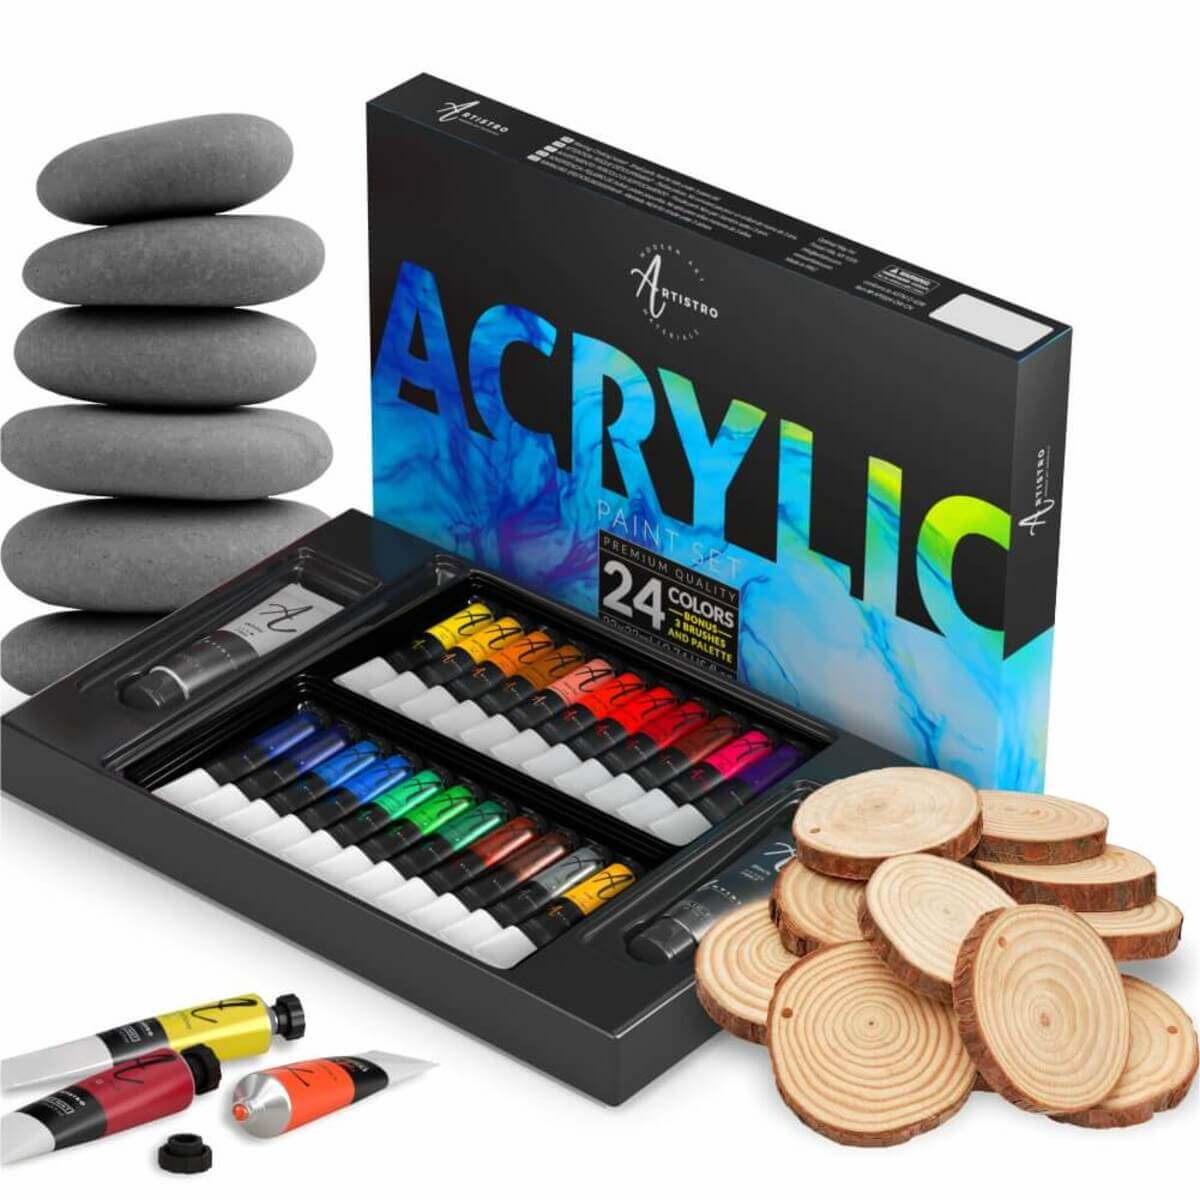 30 Acrylic Paint Markers Medium Tip (2mm) - Great for Rock Painting, Wood, Fabric, Card, Paper, Photo Album, Ceramic & Glass